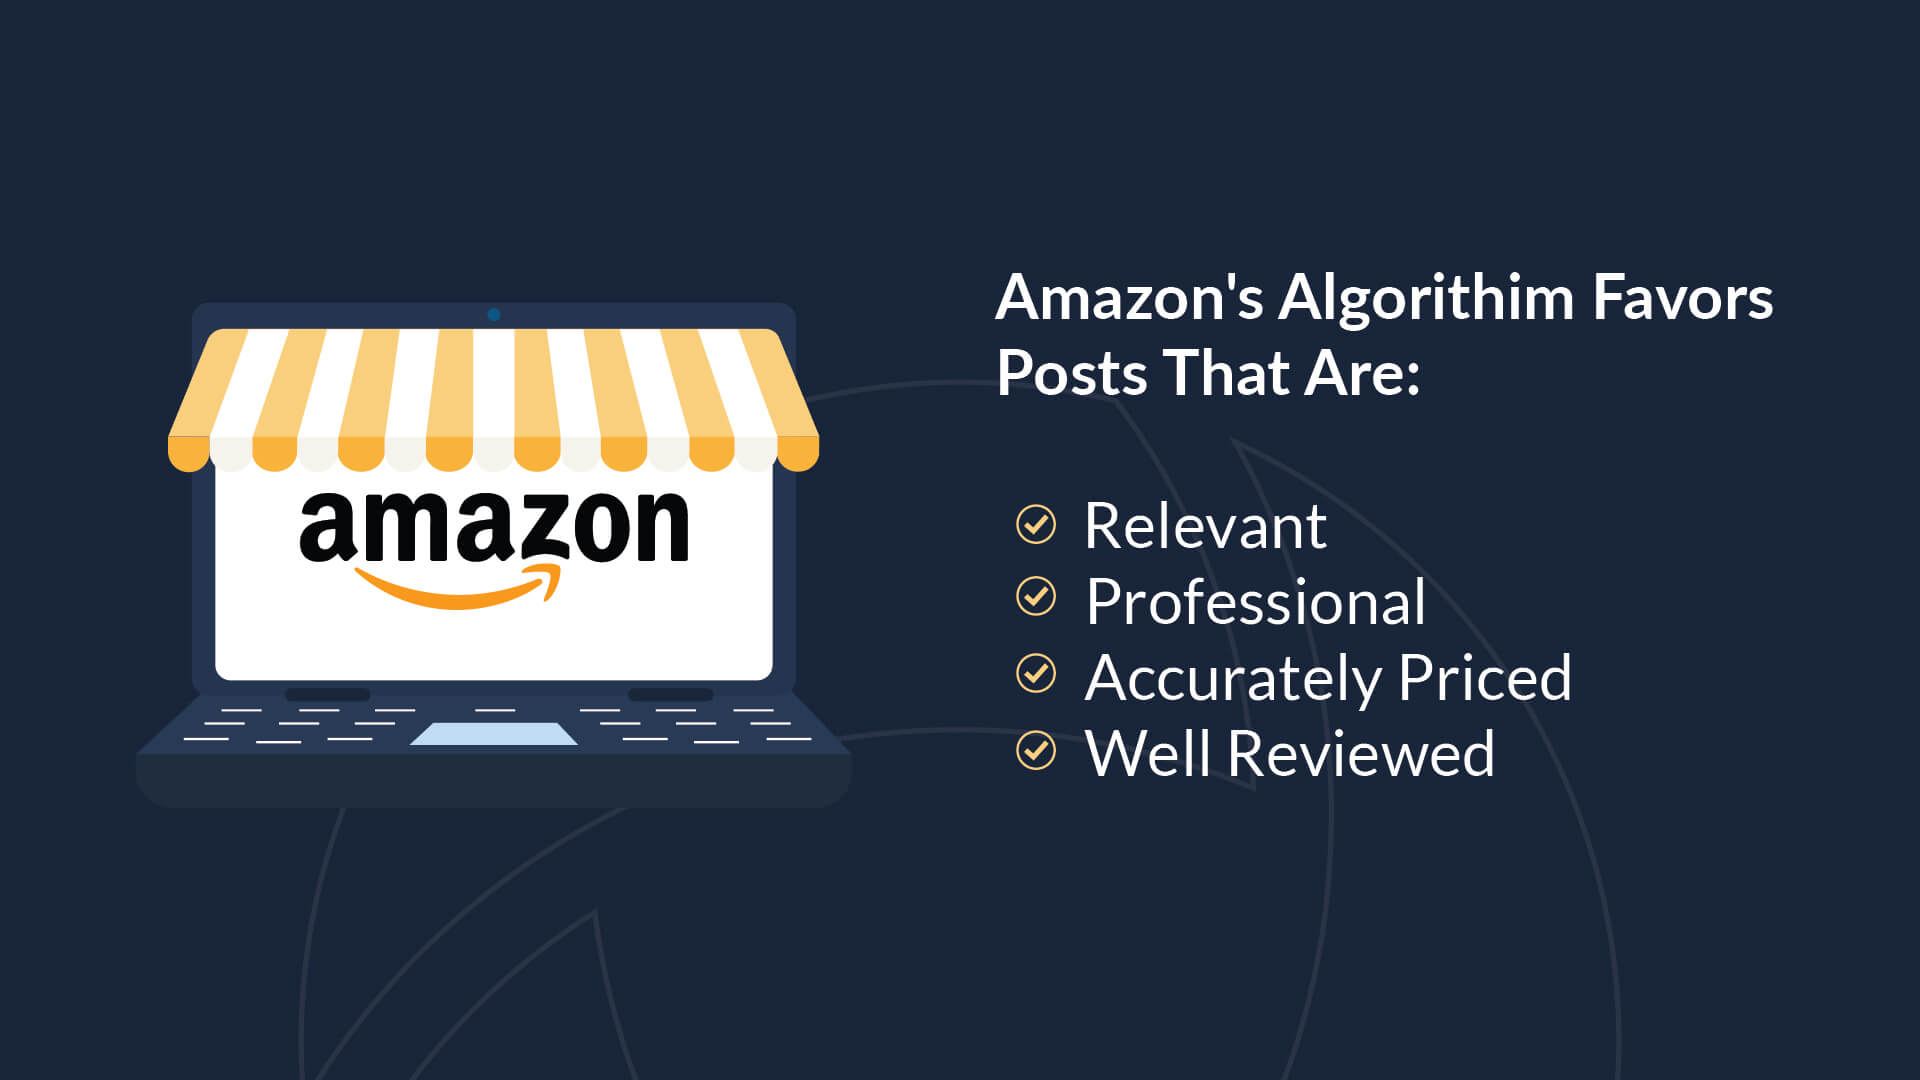 Amazon values posts that are relevant, professional, accurately priced, and well reviewed.